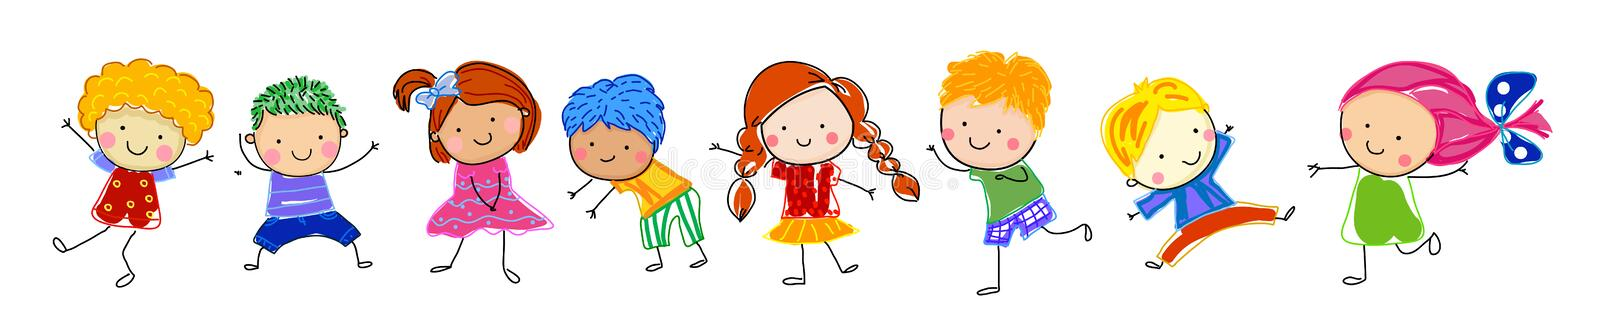 Group of kids, drawing sketch stock illustration